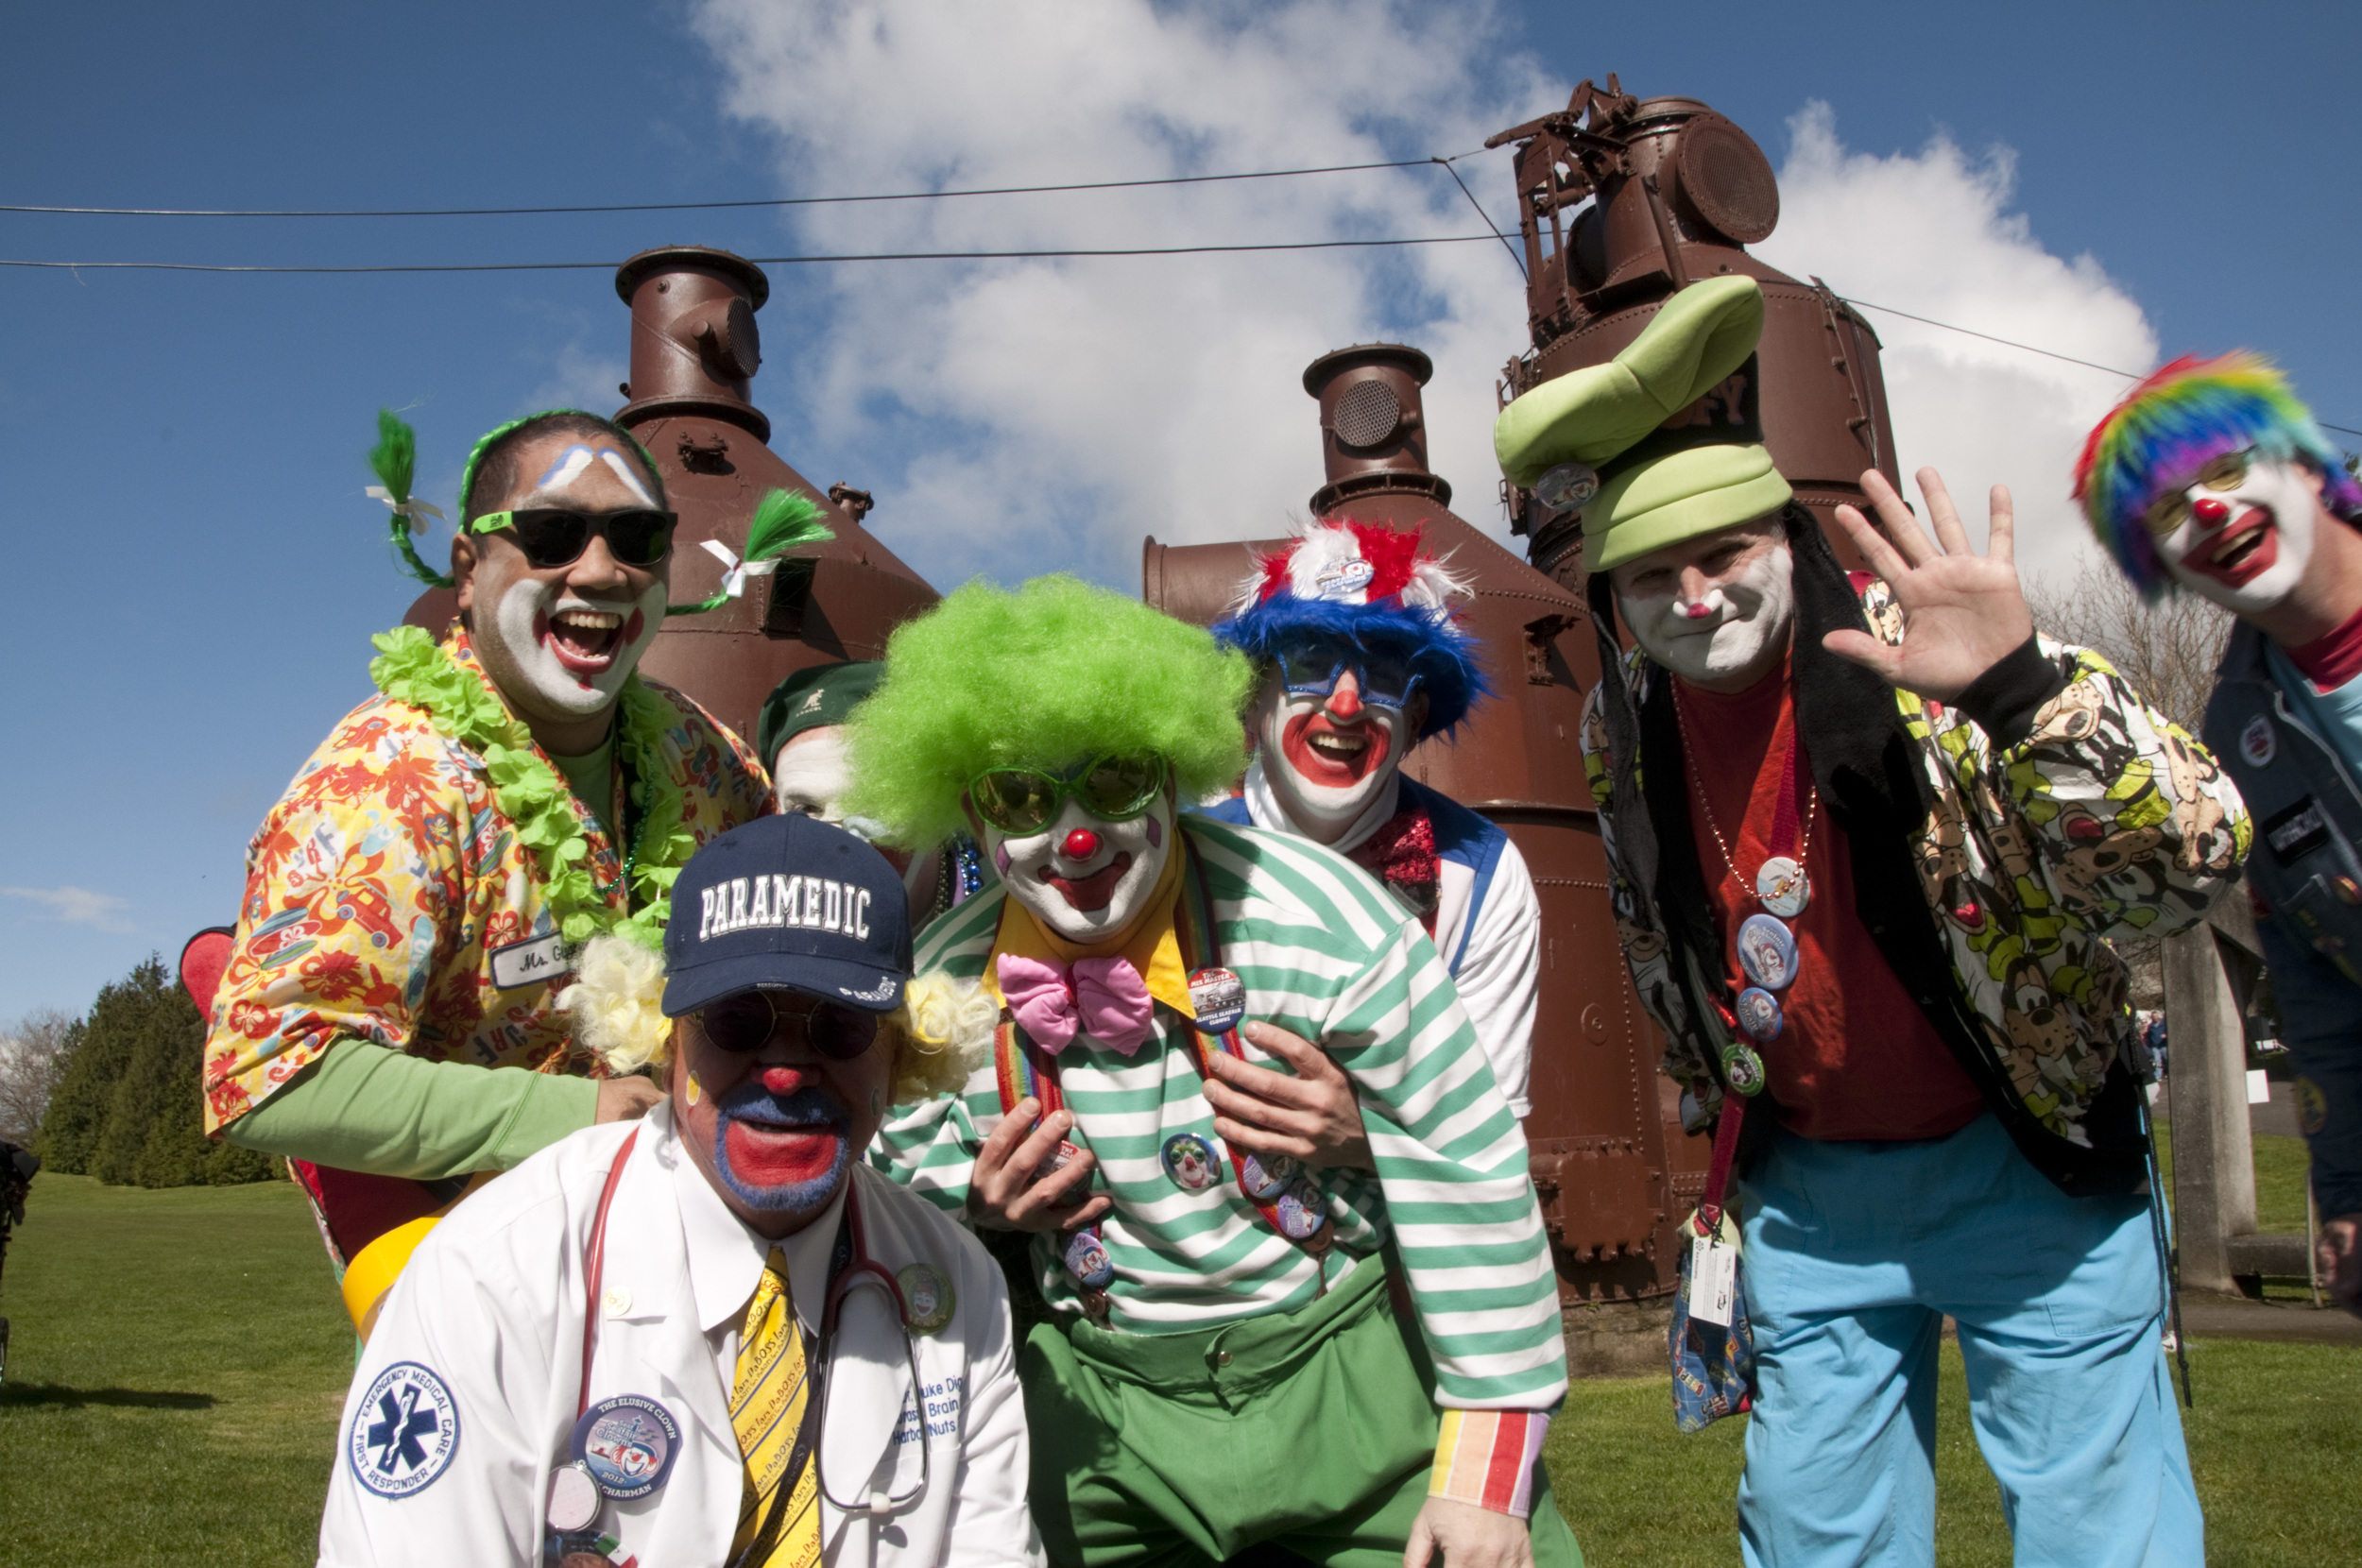 Seafair Clowns_MS Walk_4-14-13_2953.jpg